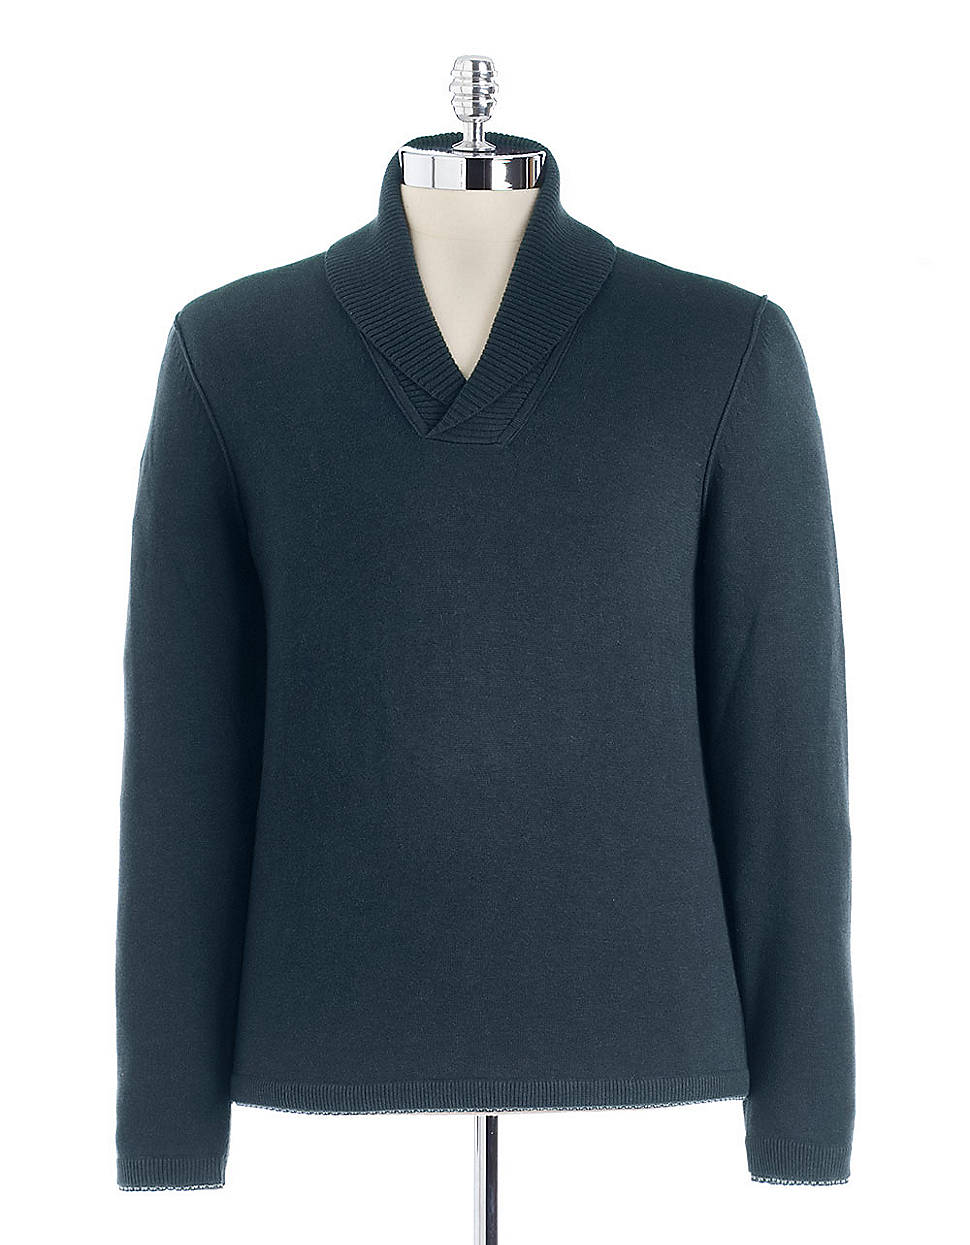 hugo boss shawl collar pullover sweater in blue for men lyst. Black Bedroom Furniture Sets. Home Design Ideas